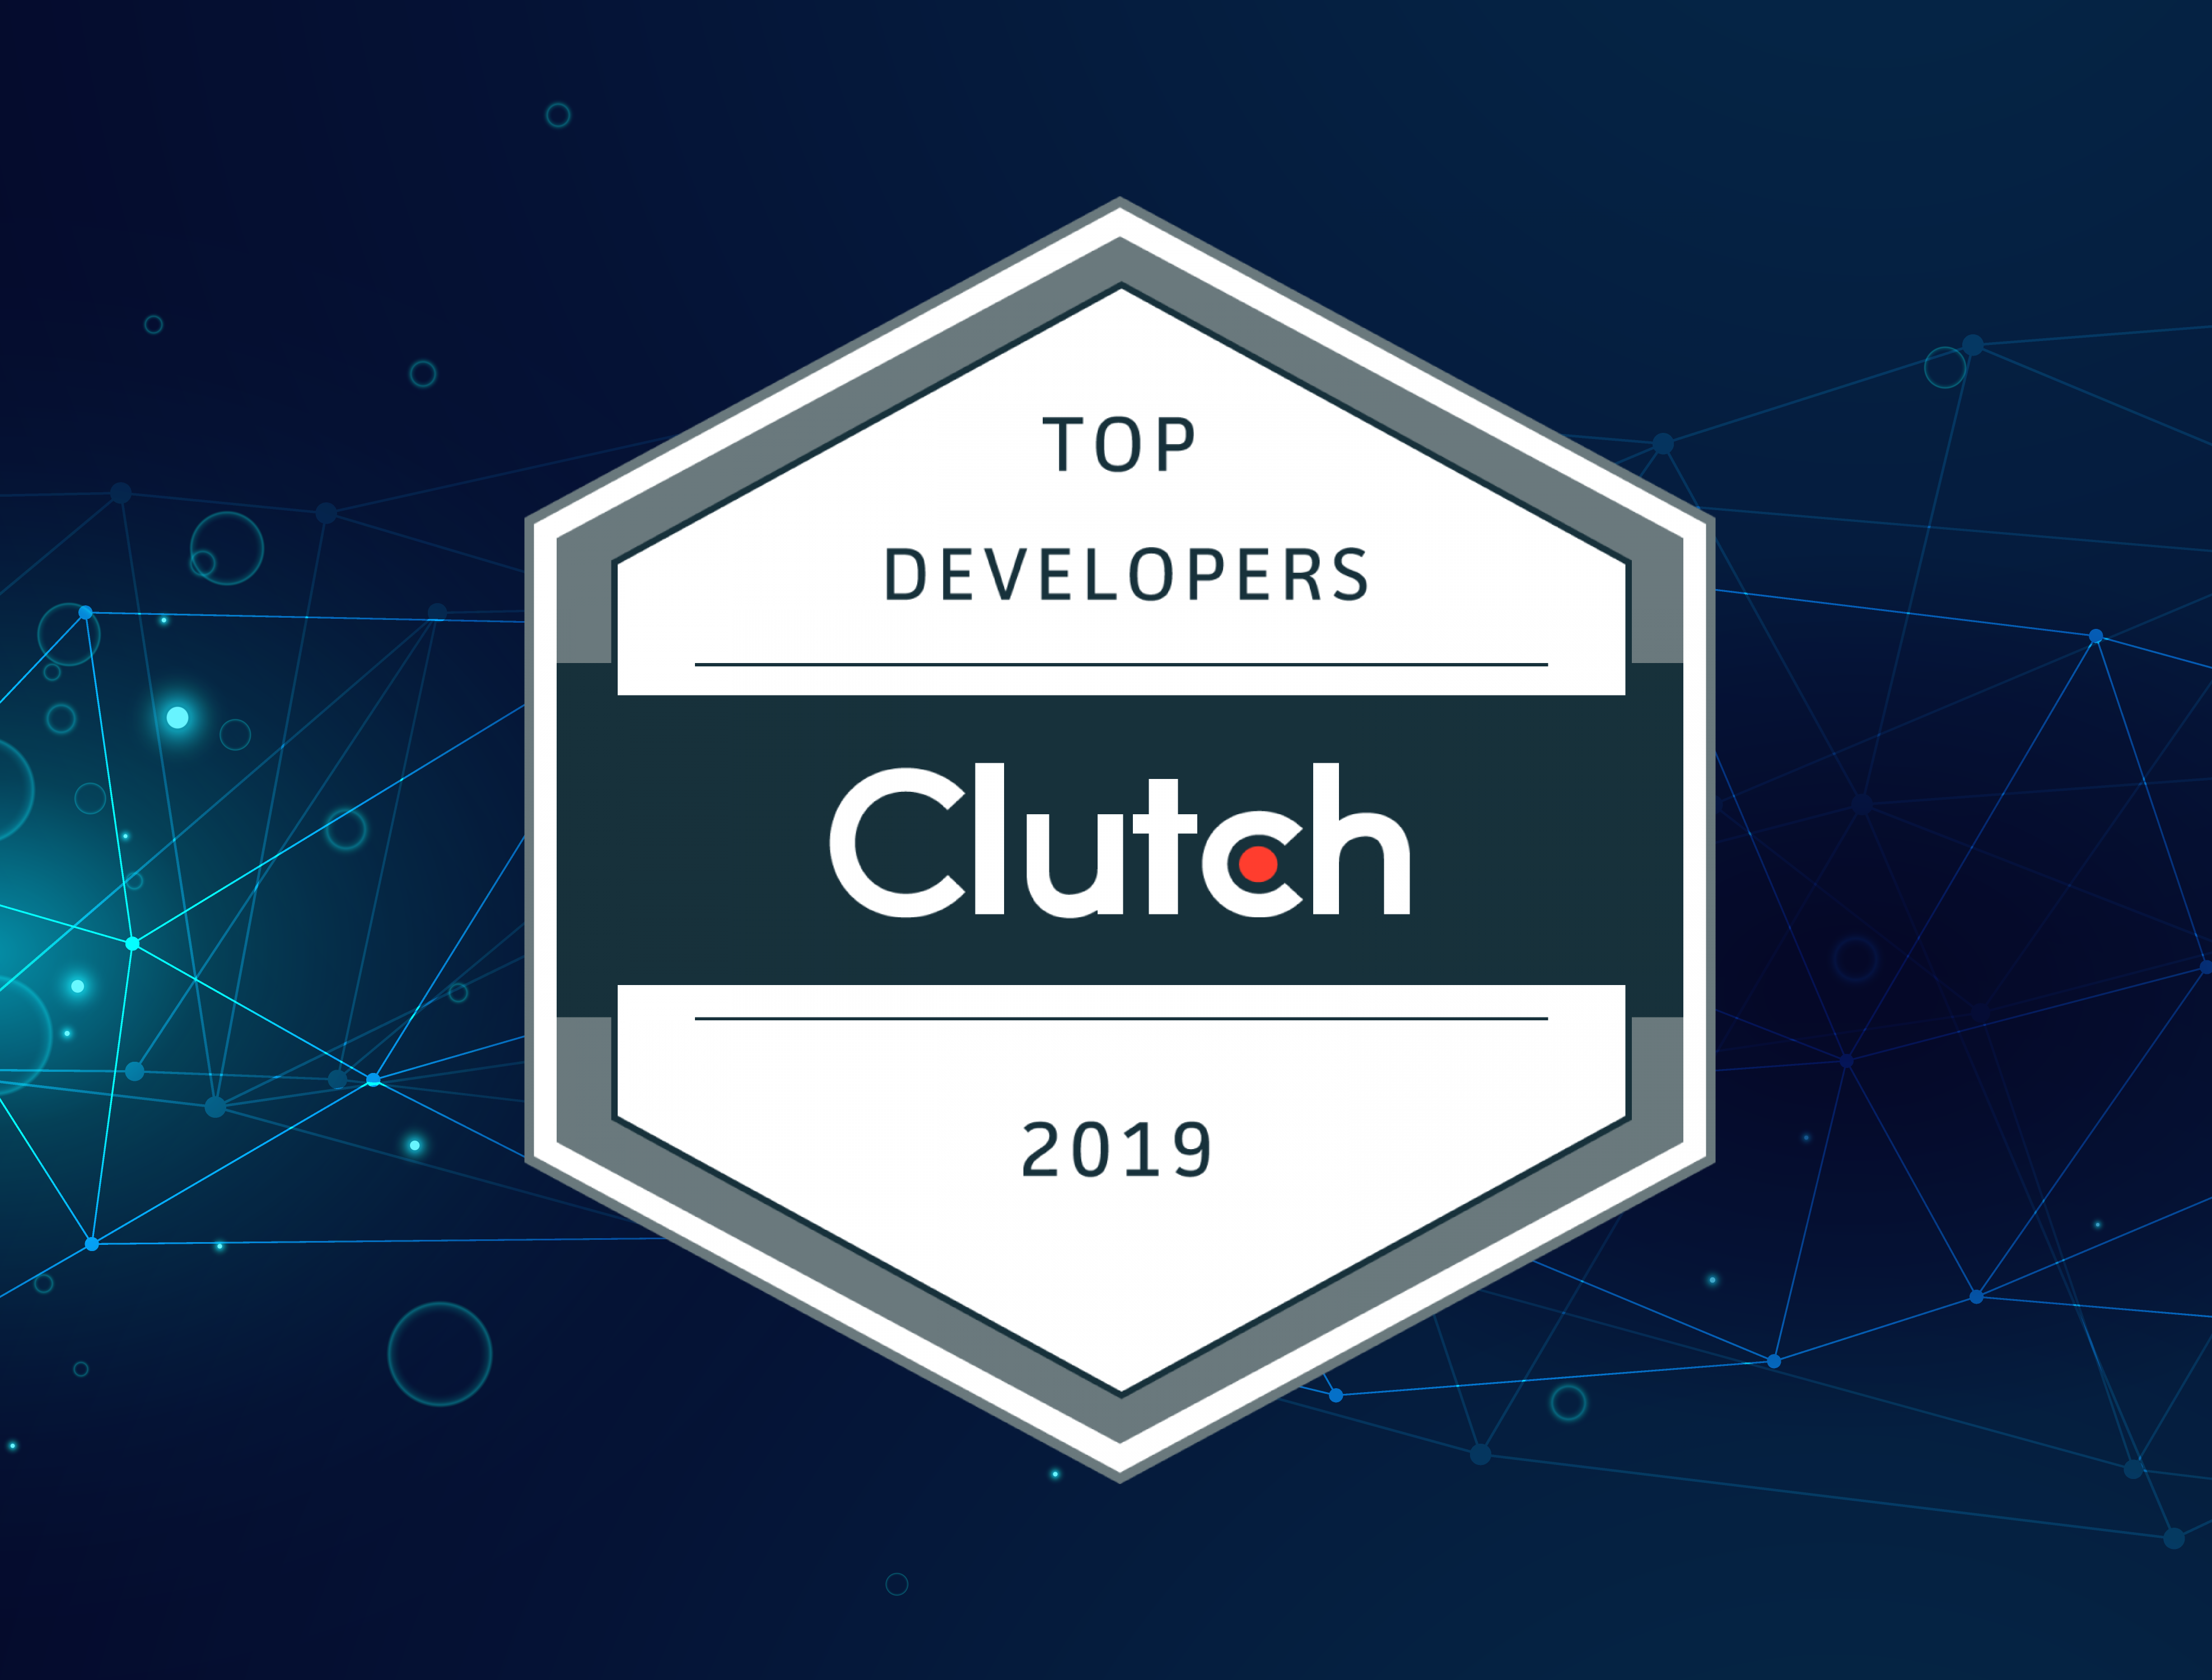 Clutch Names Digital Awesome a Top Developer in Washington!